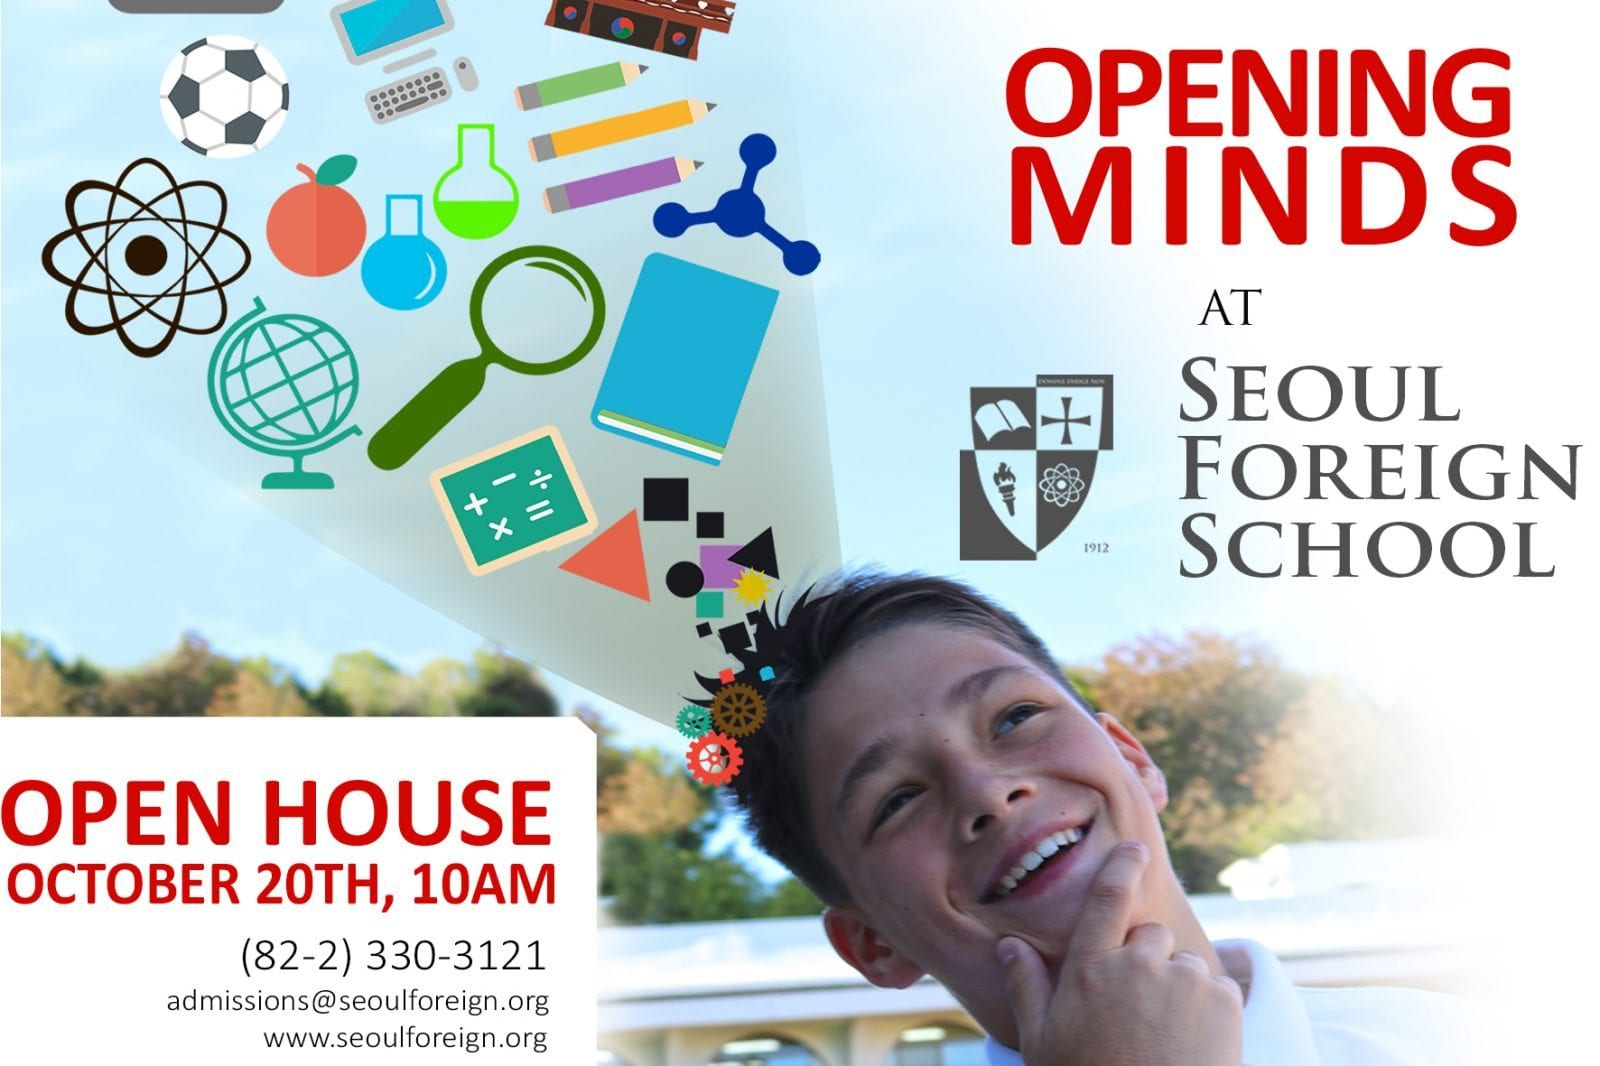 SFS, open house, October, 2016, Seoul, Korea, international school, foreign school